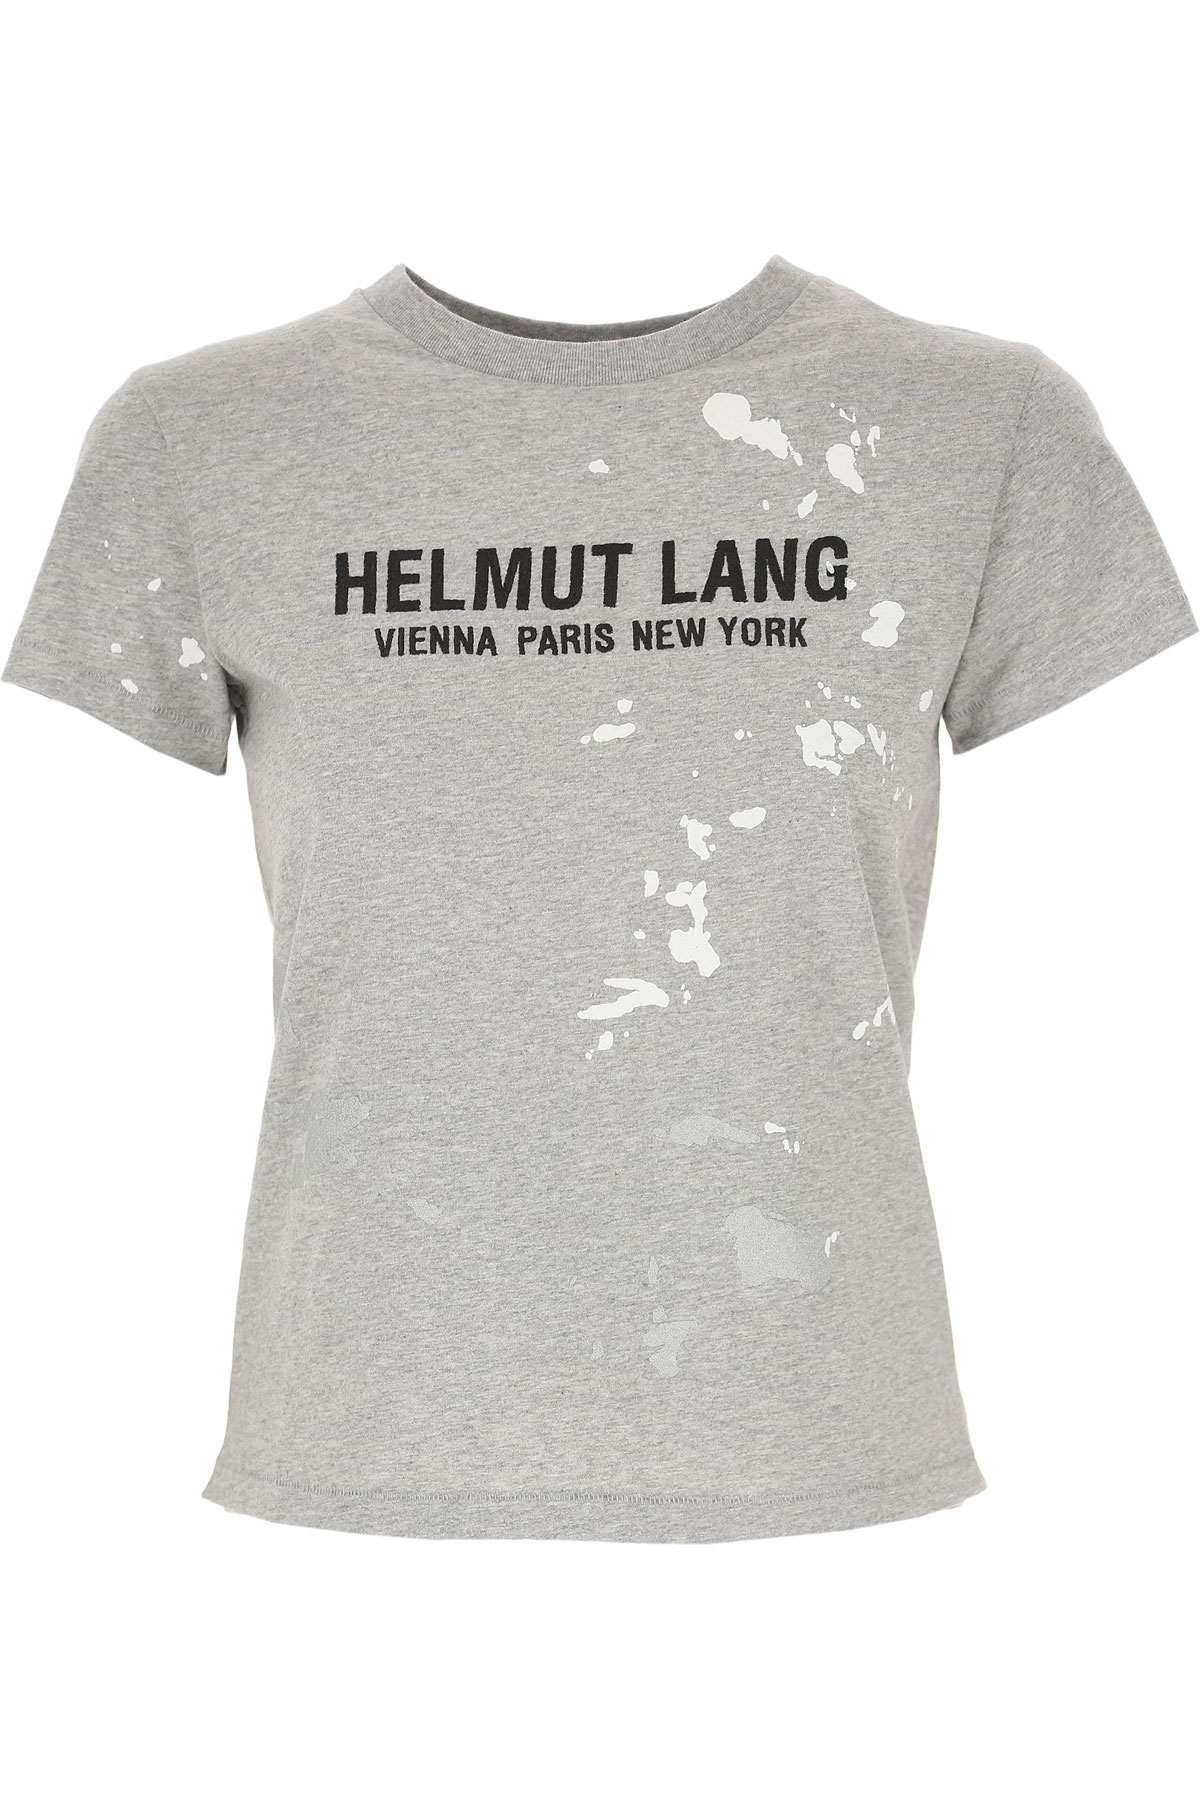 Helmut Lang T-Shirt for Women On Sale, Grey, Cotton, 2019, 4 6